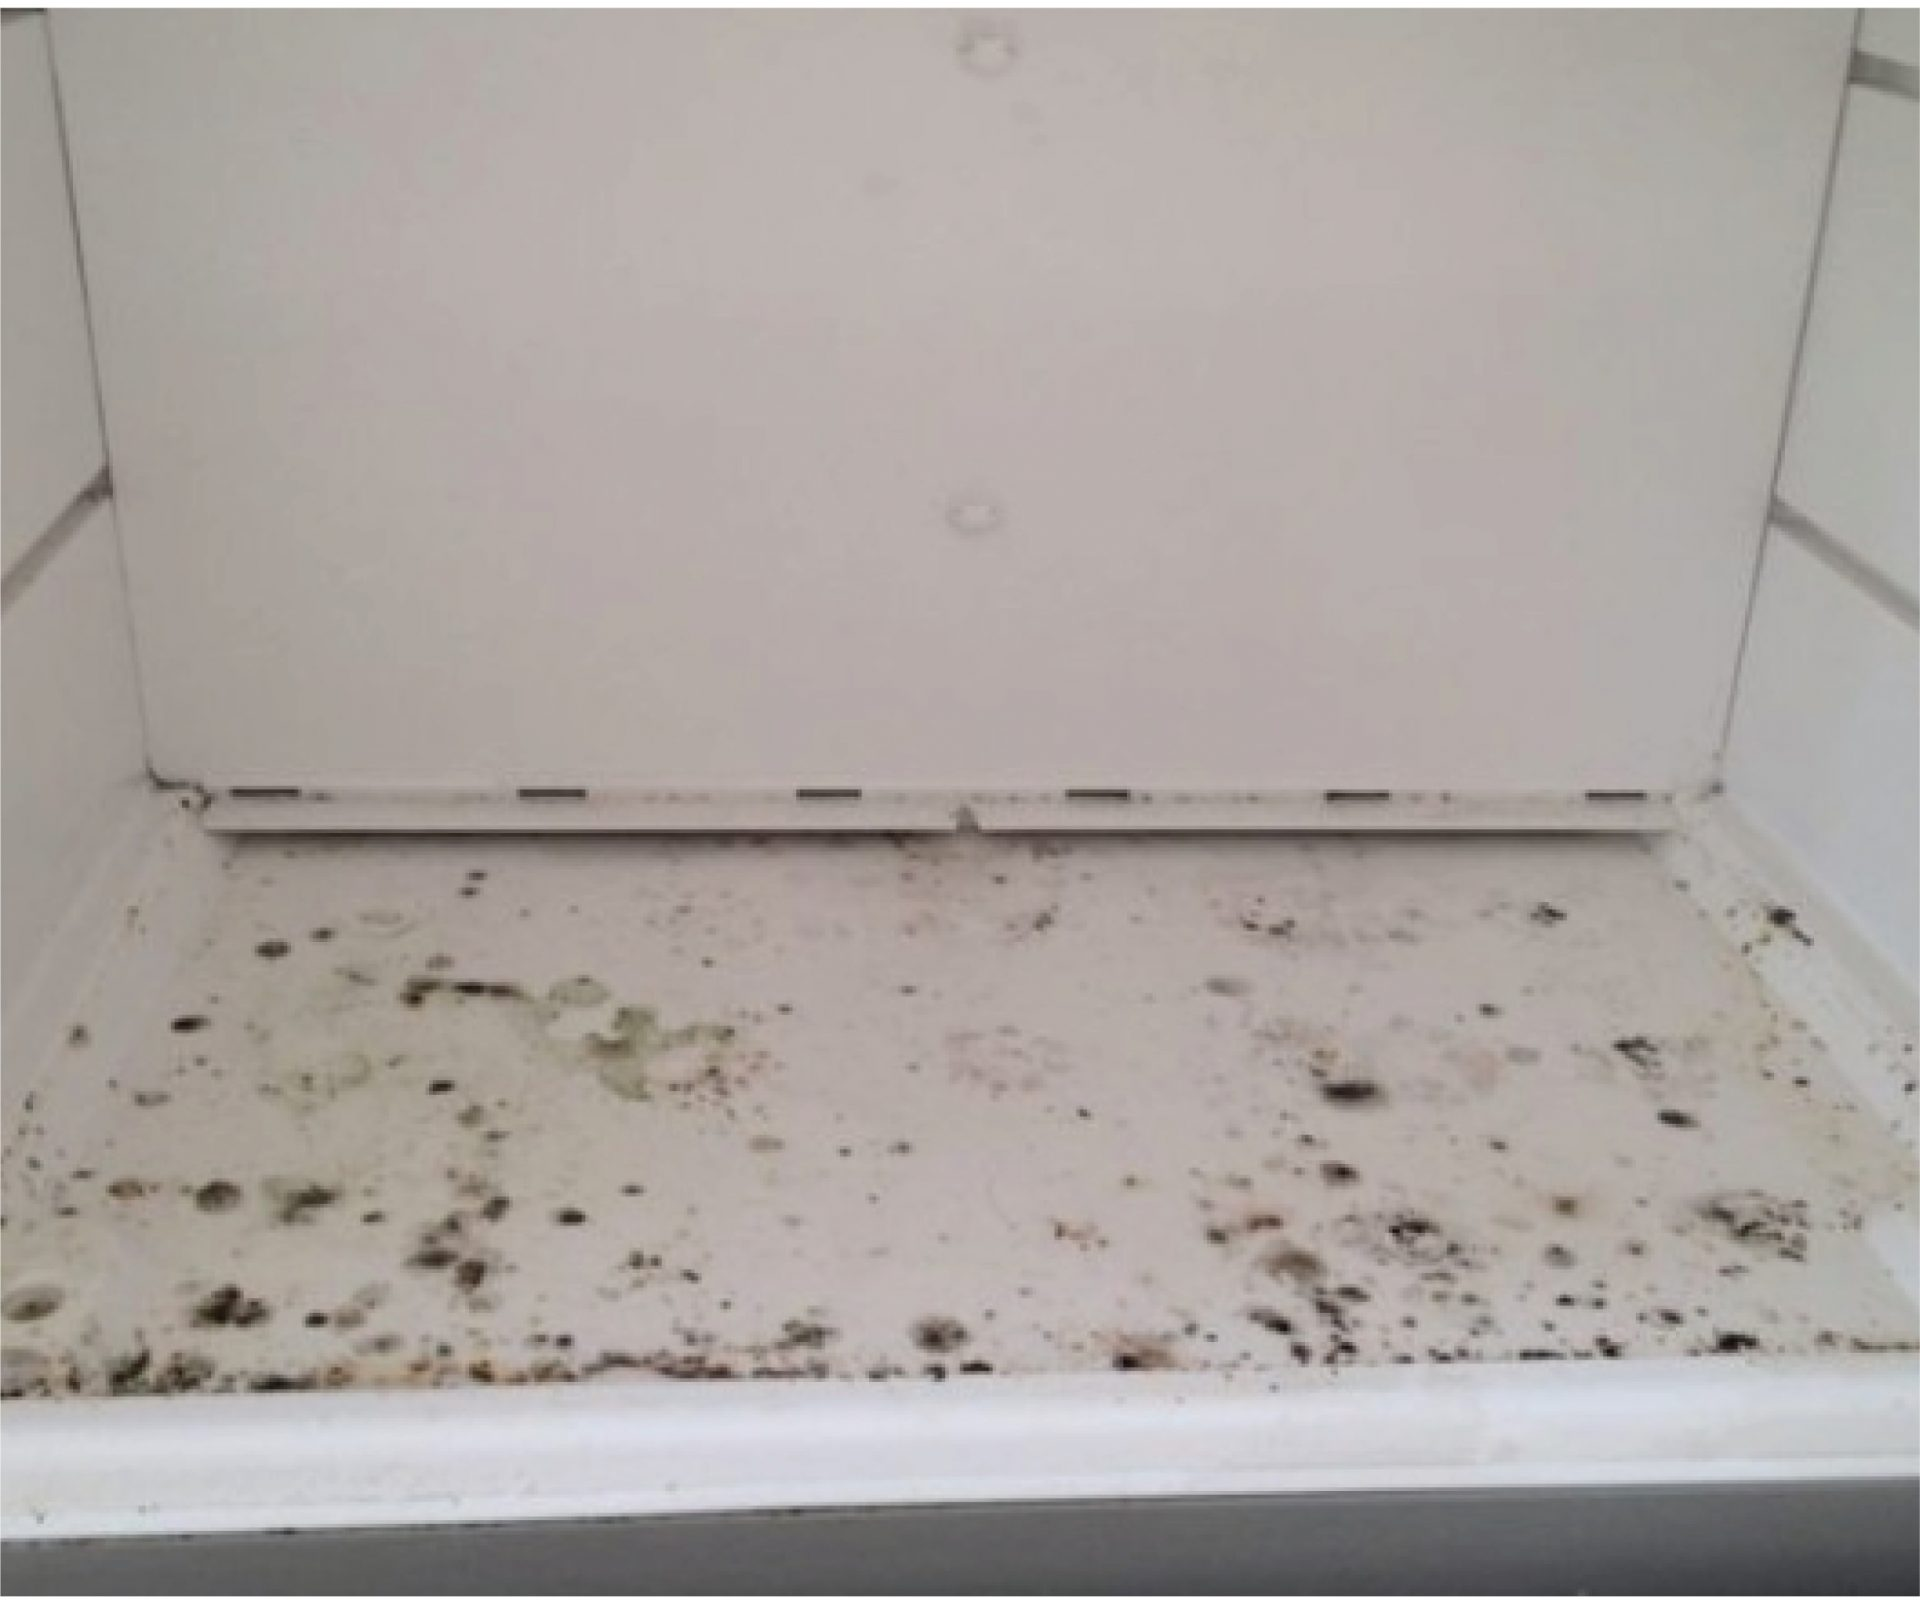 4 Remove Mold From Your Refrigerator